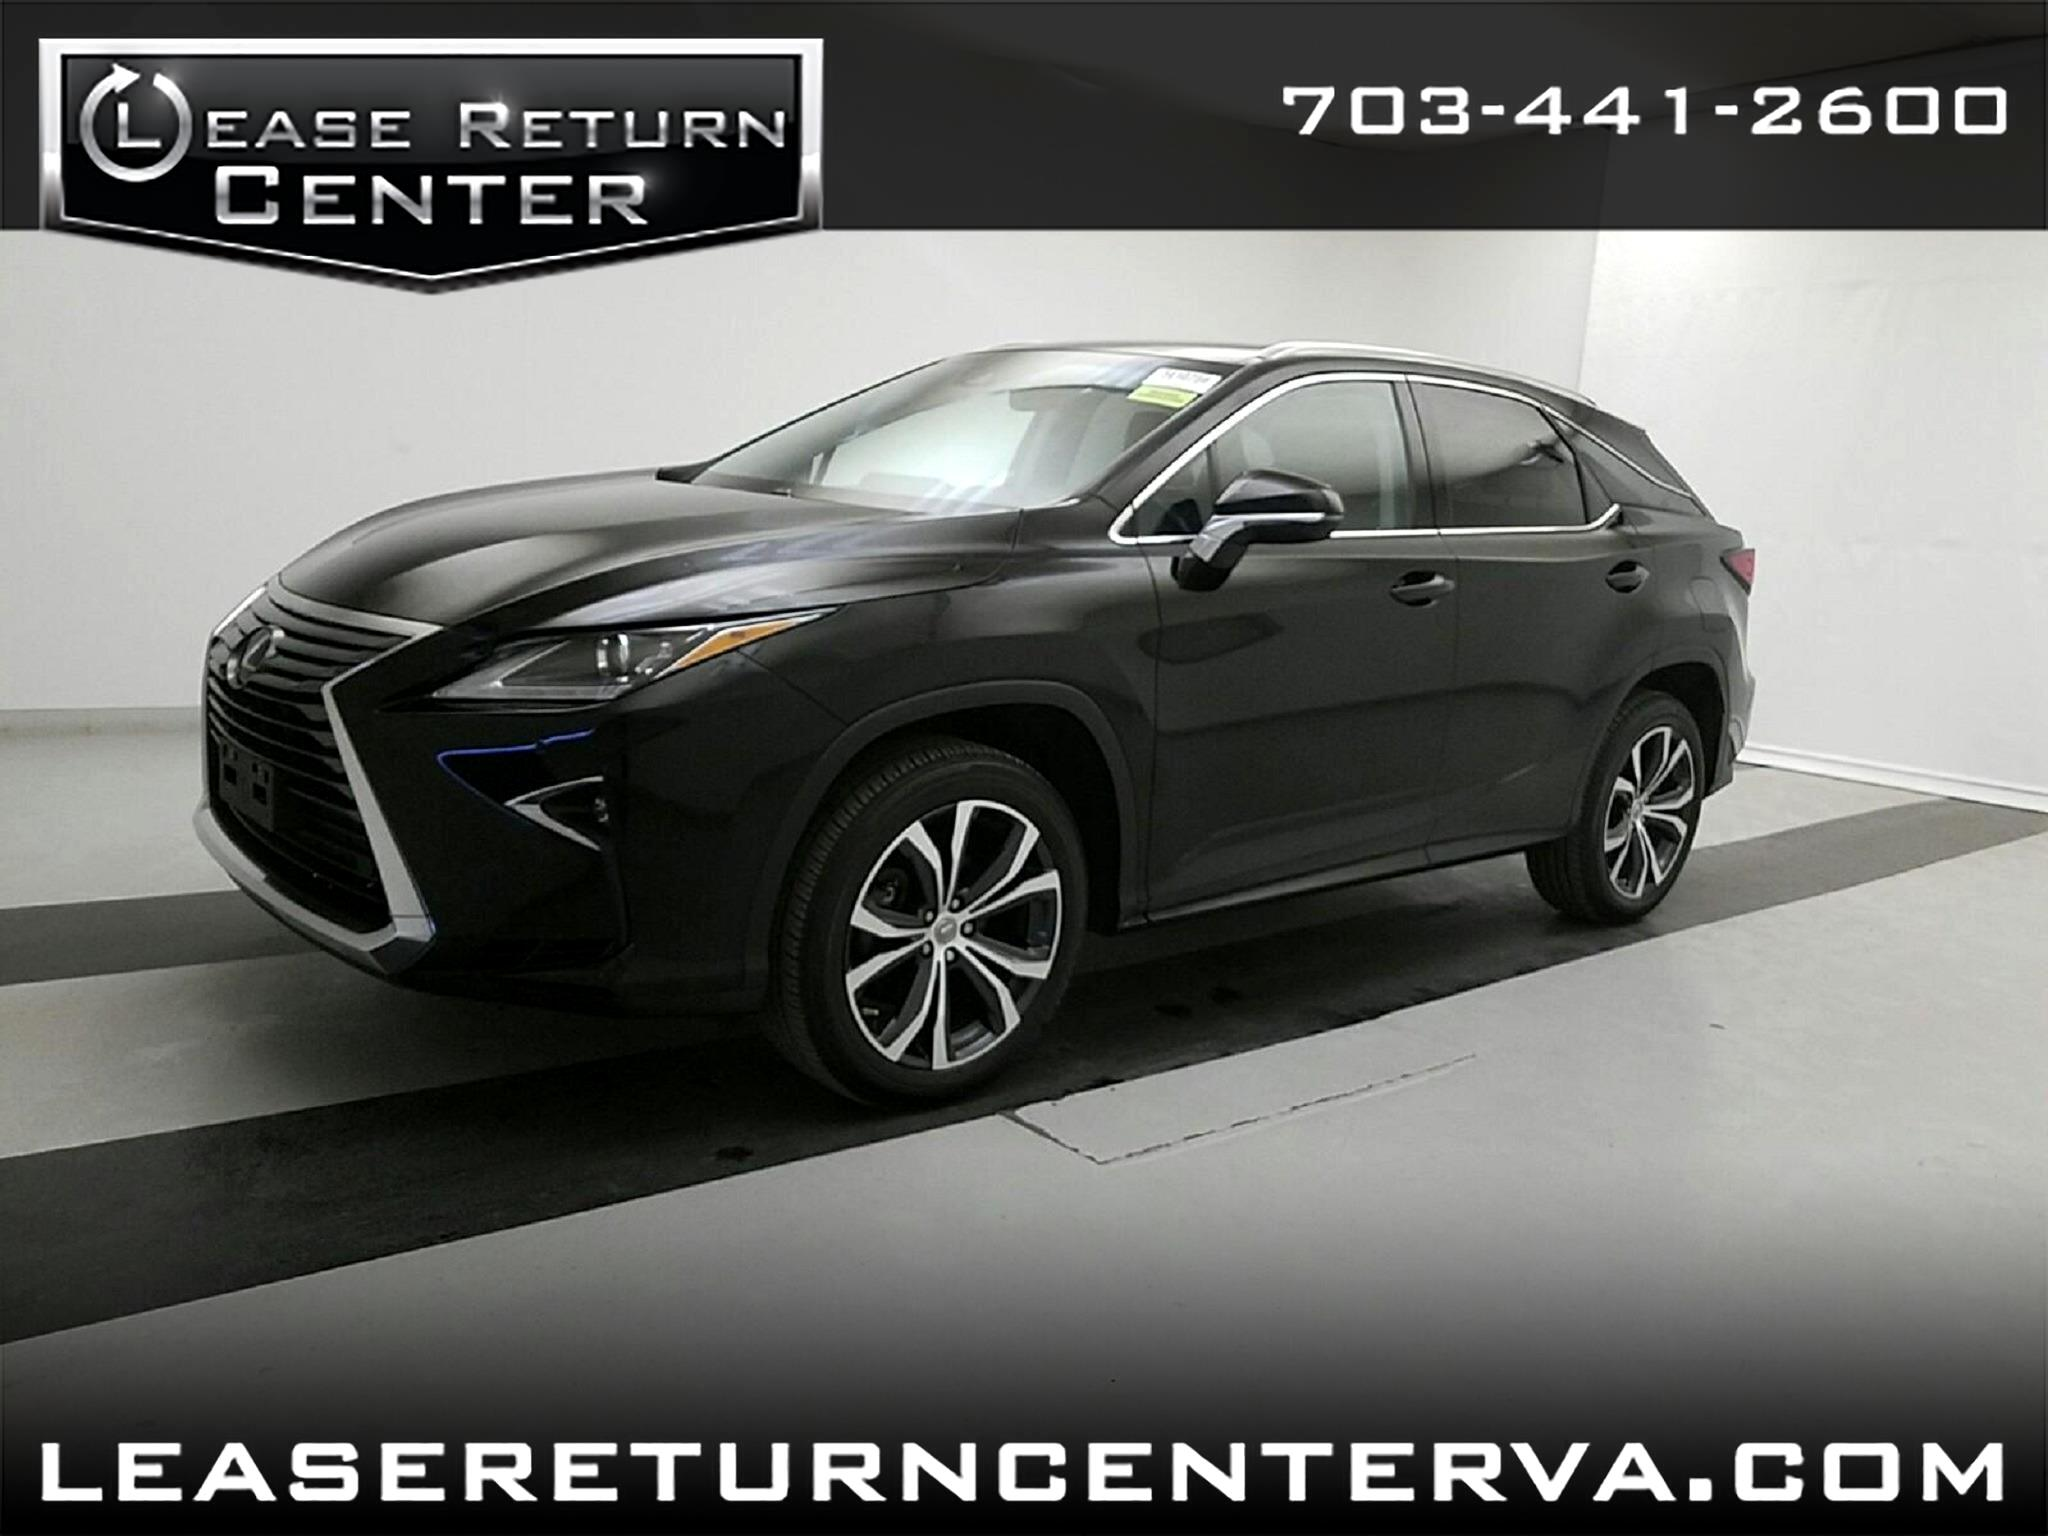 2016 Lexus RX 350 AWD Premium Package with Navigation